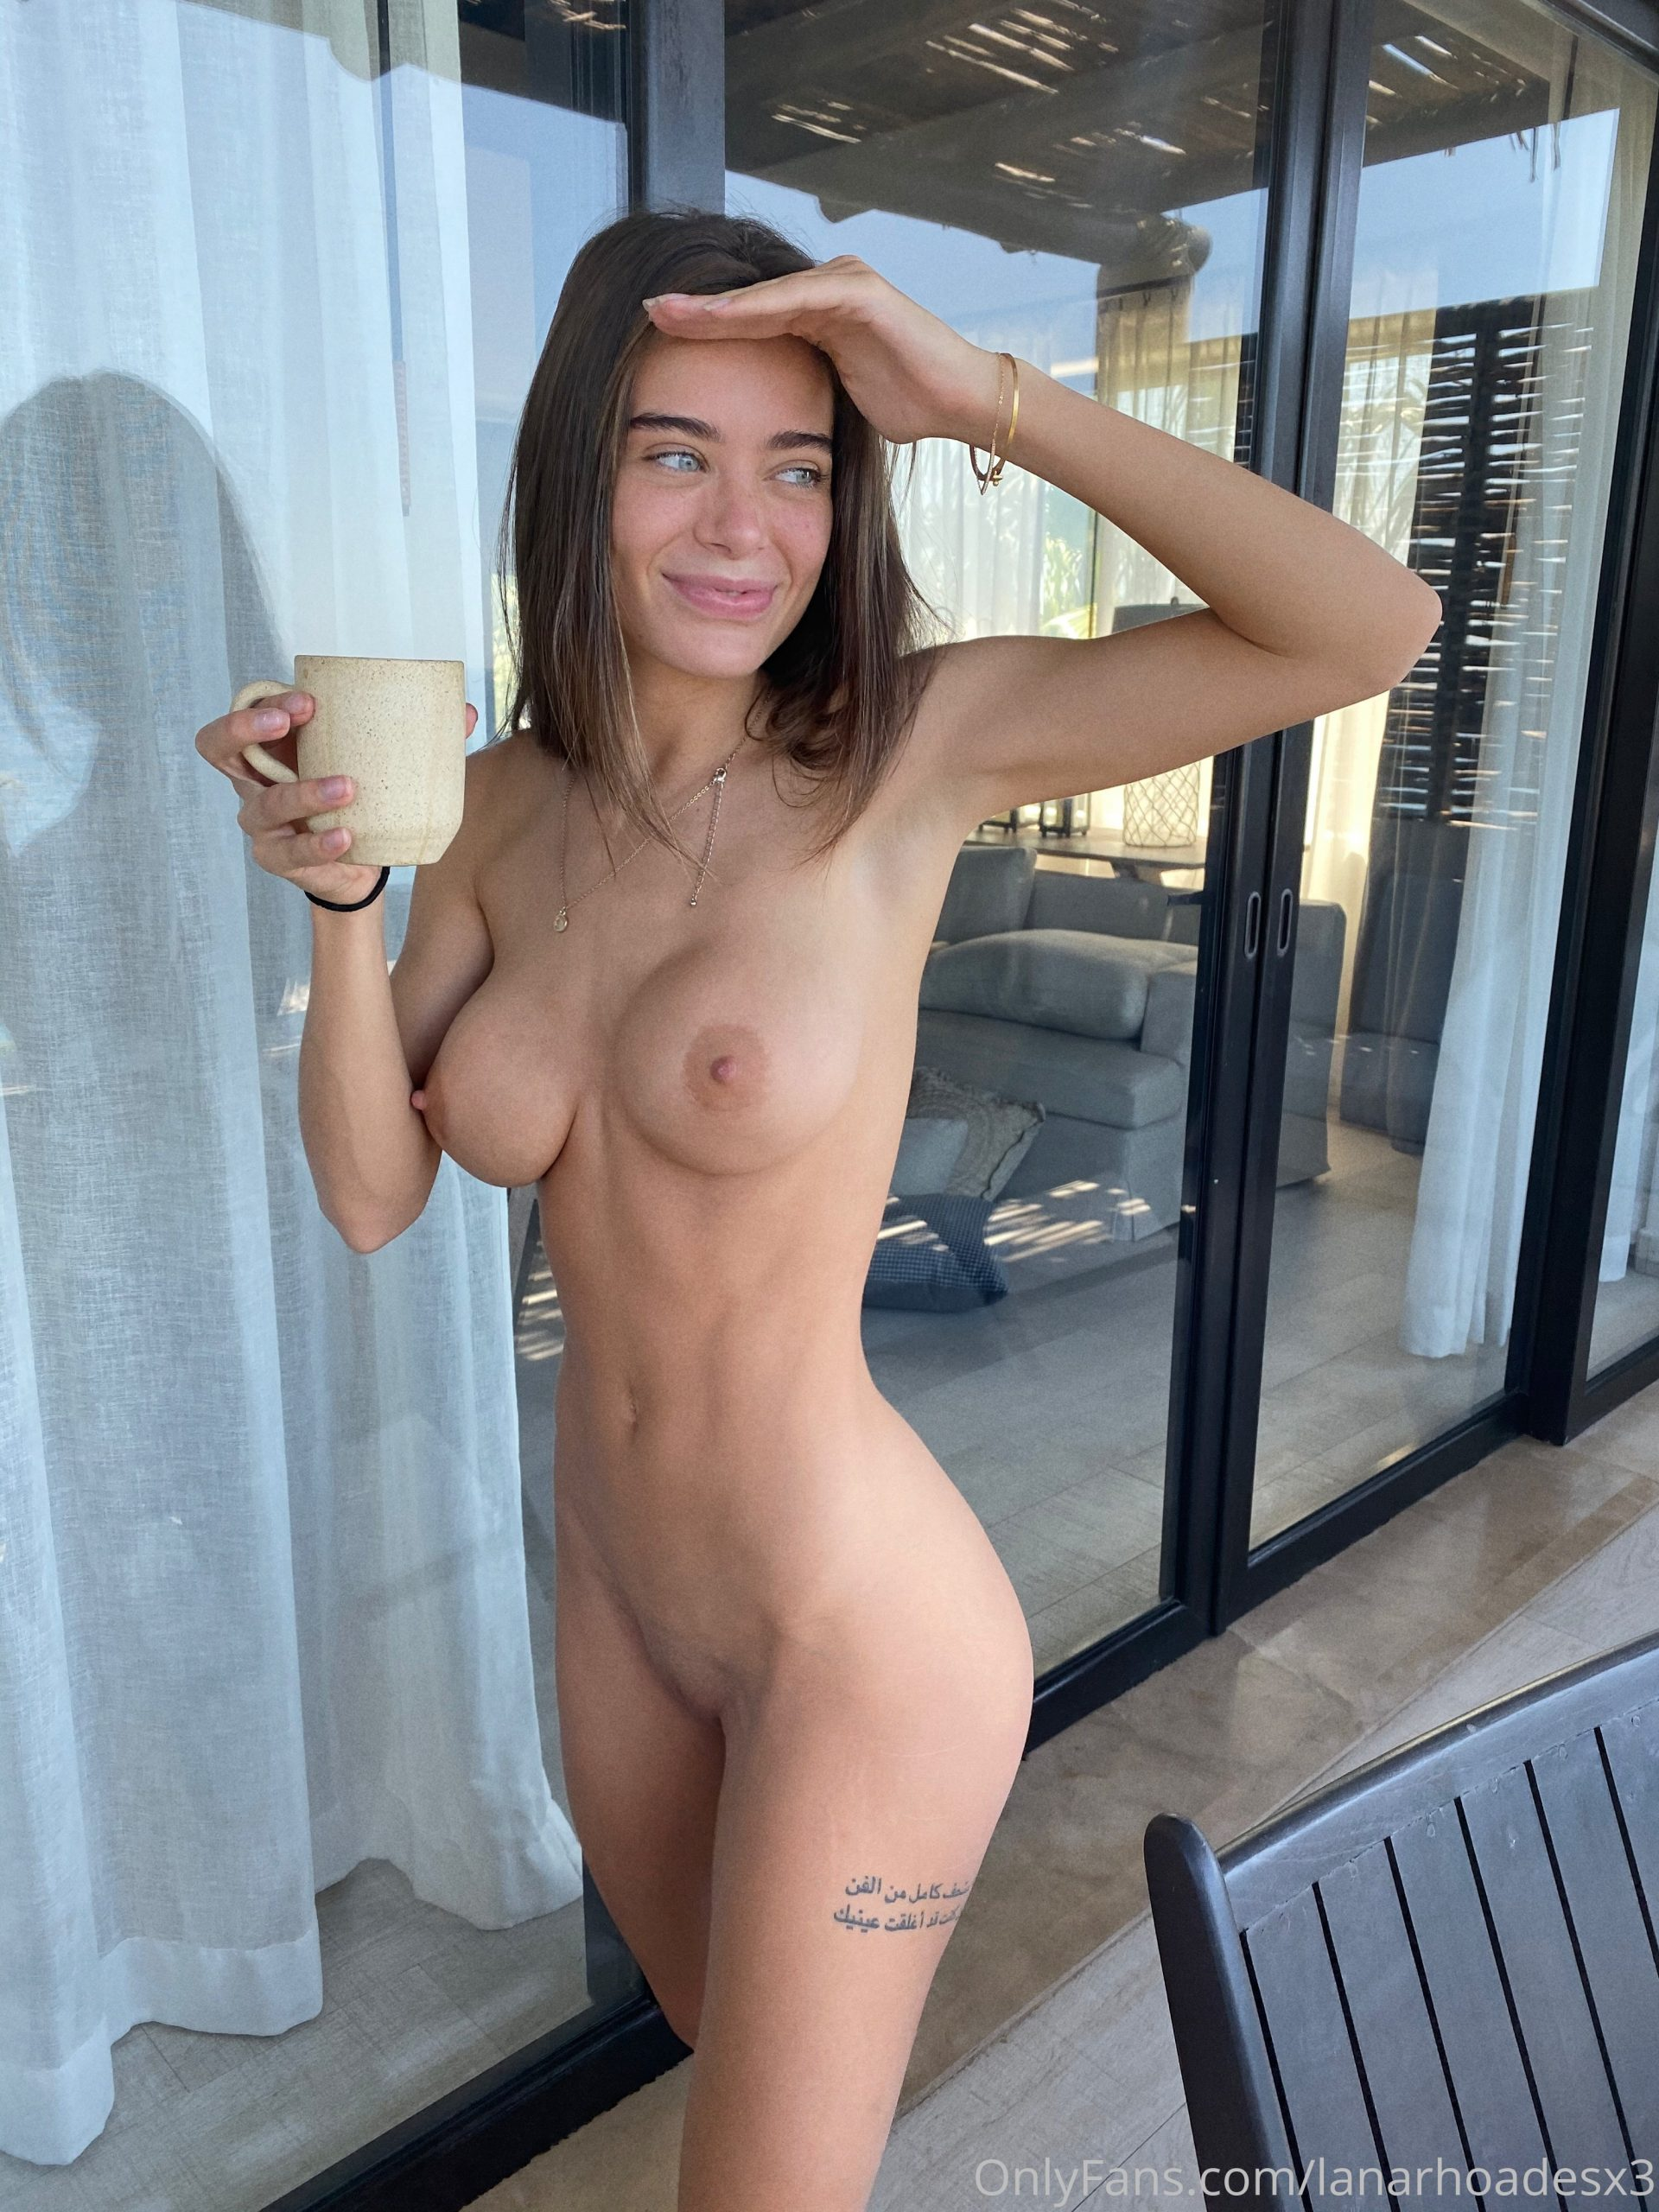 Lana Rhoades onlyfans fully naked in the morning scaled - Lana Rhoades OnlyFans Nude Porn Videos